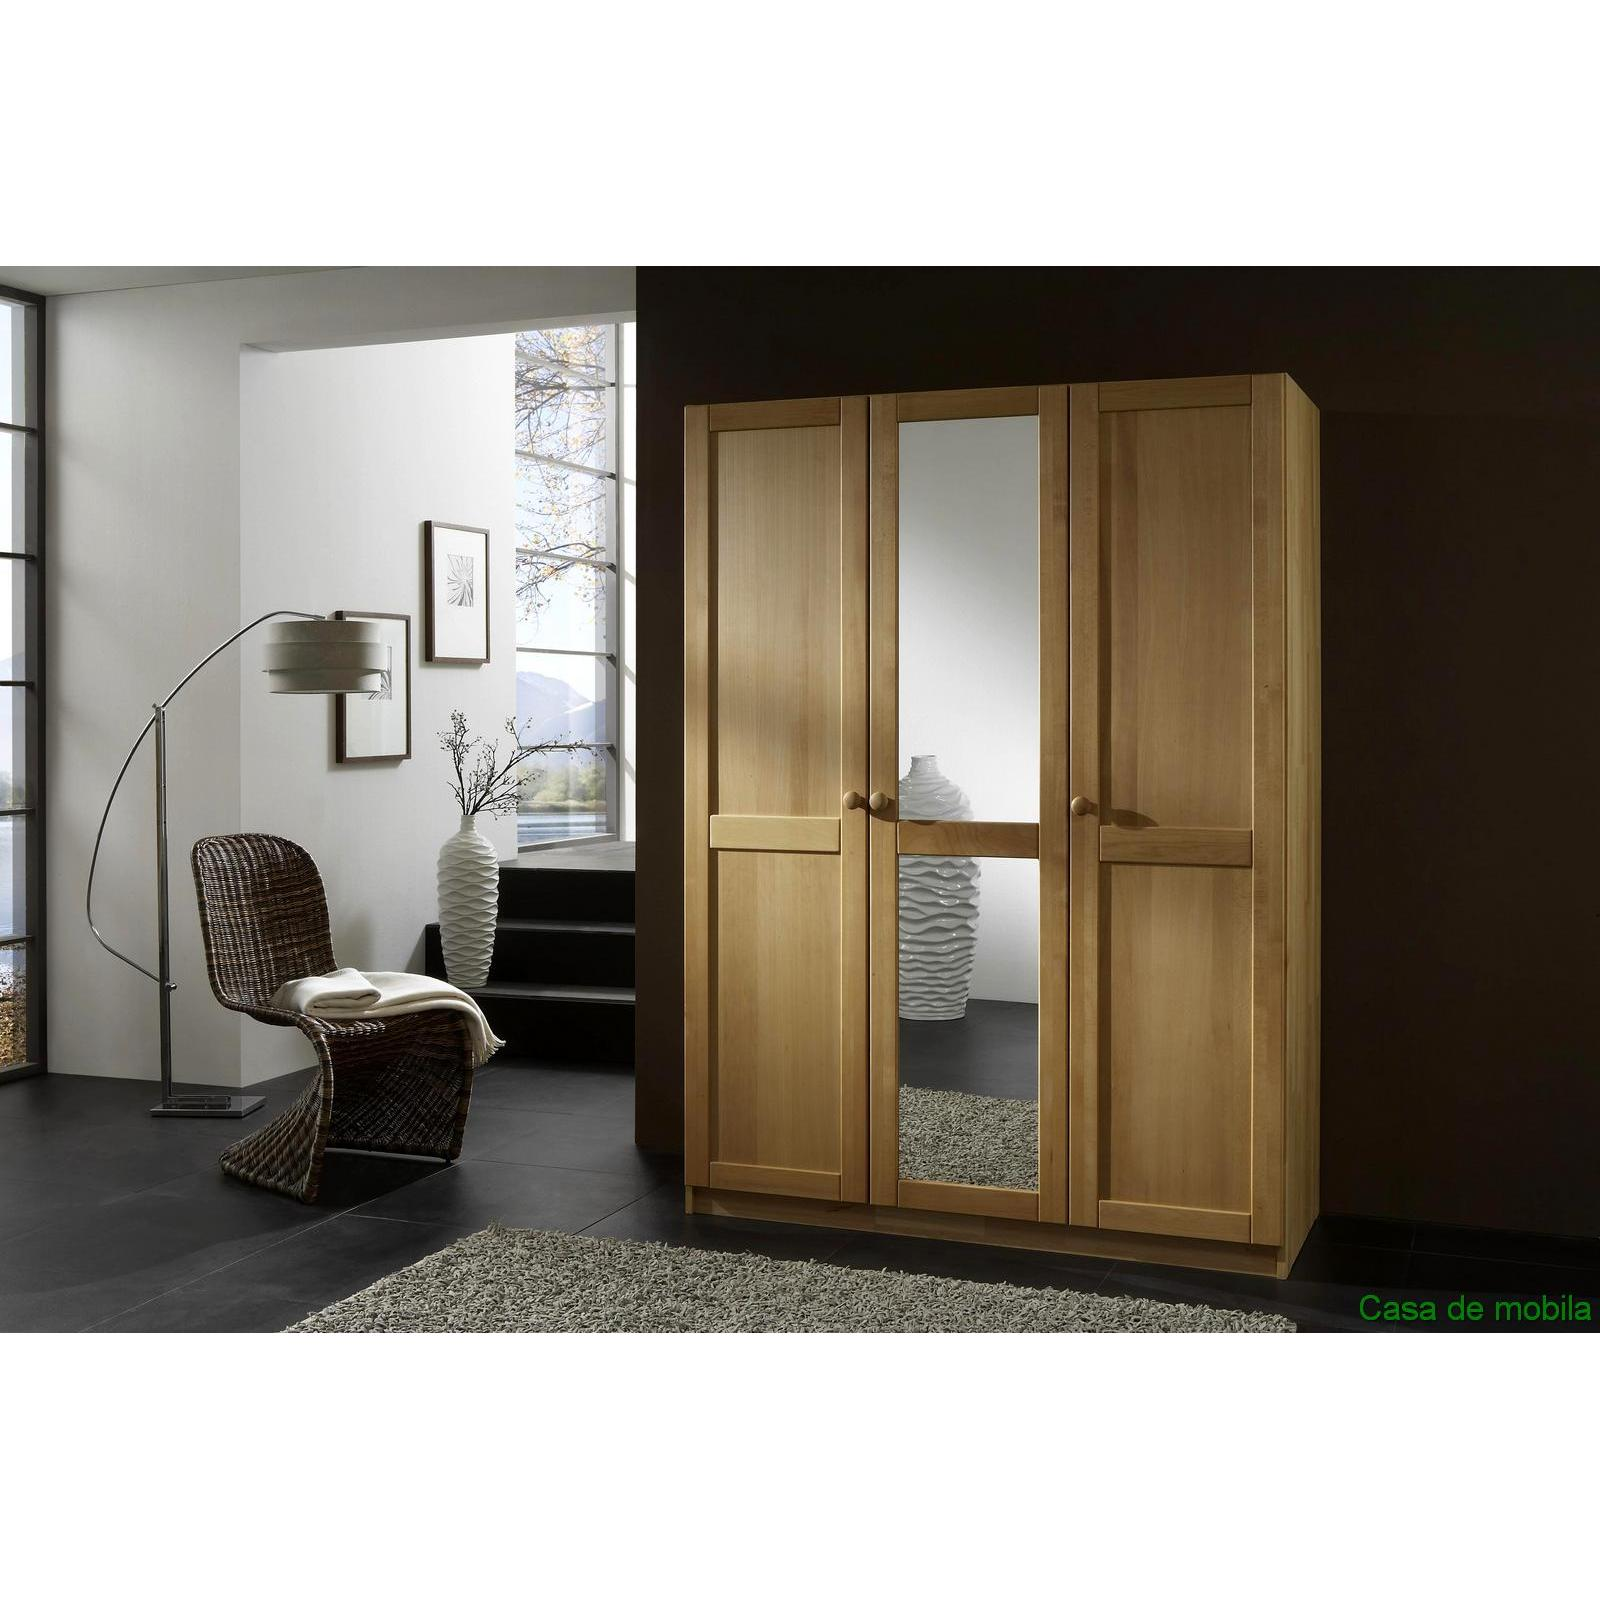 massivholz kleiderschrank 3 t rig w scheschrank holz buche massiv ge lt front 2 ebay. Black Bedroom Furniture Sets. Home Design Ideas